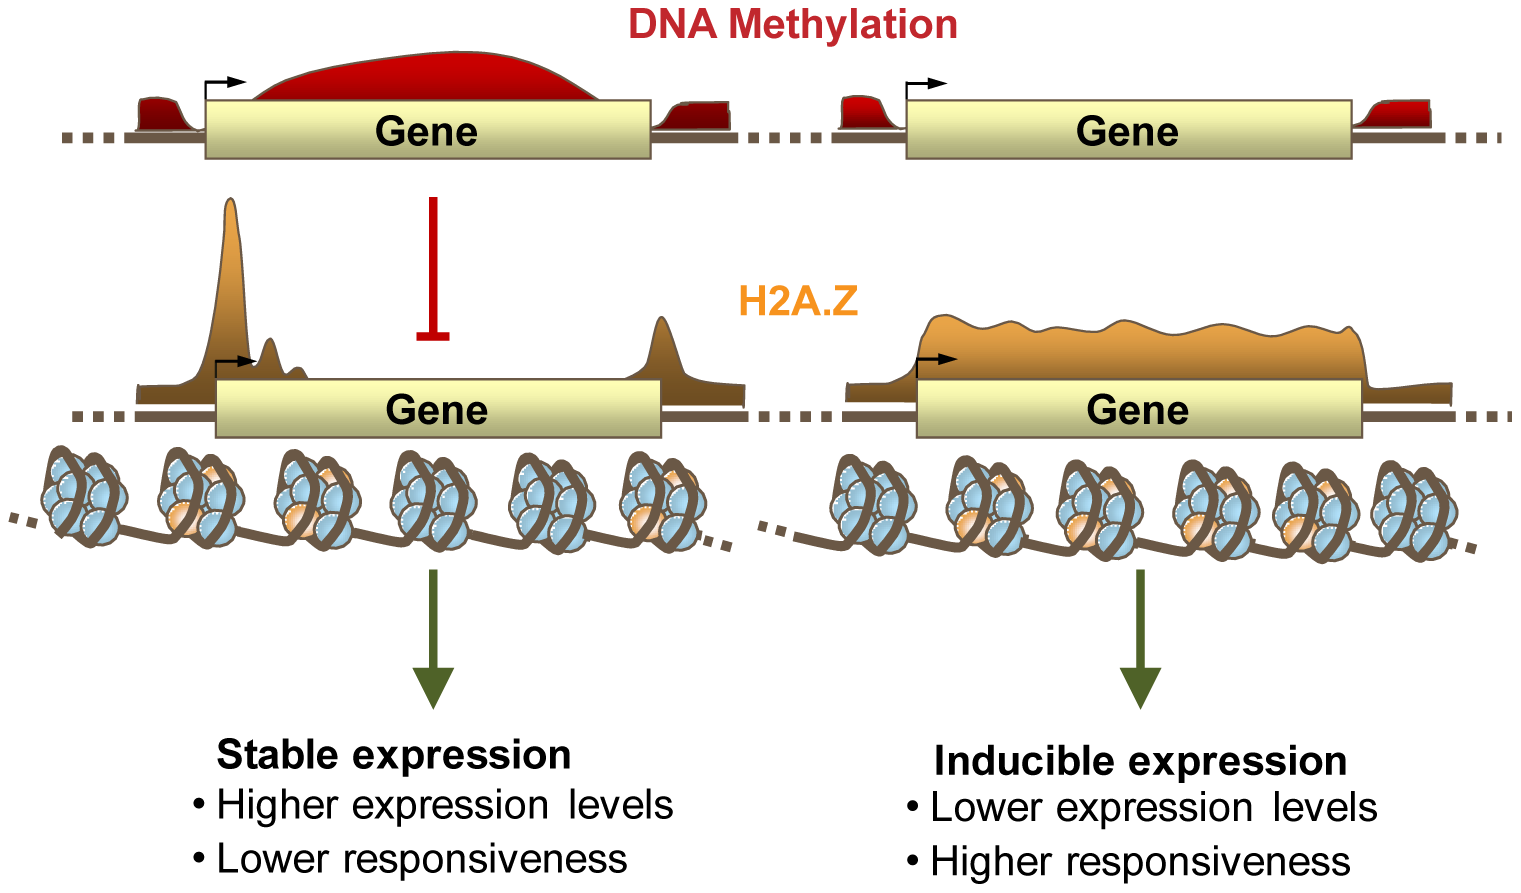 DNA Methylation, H2A.Z, and expression patterning.